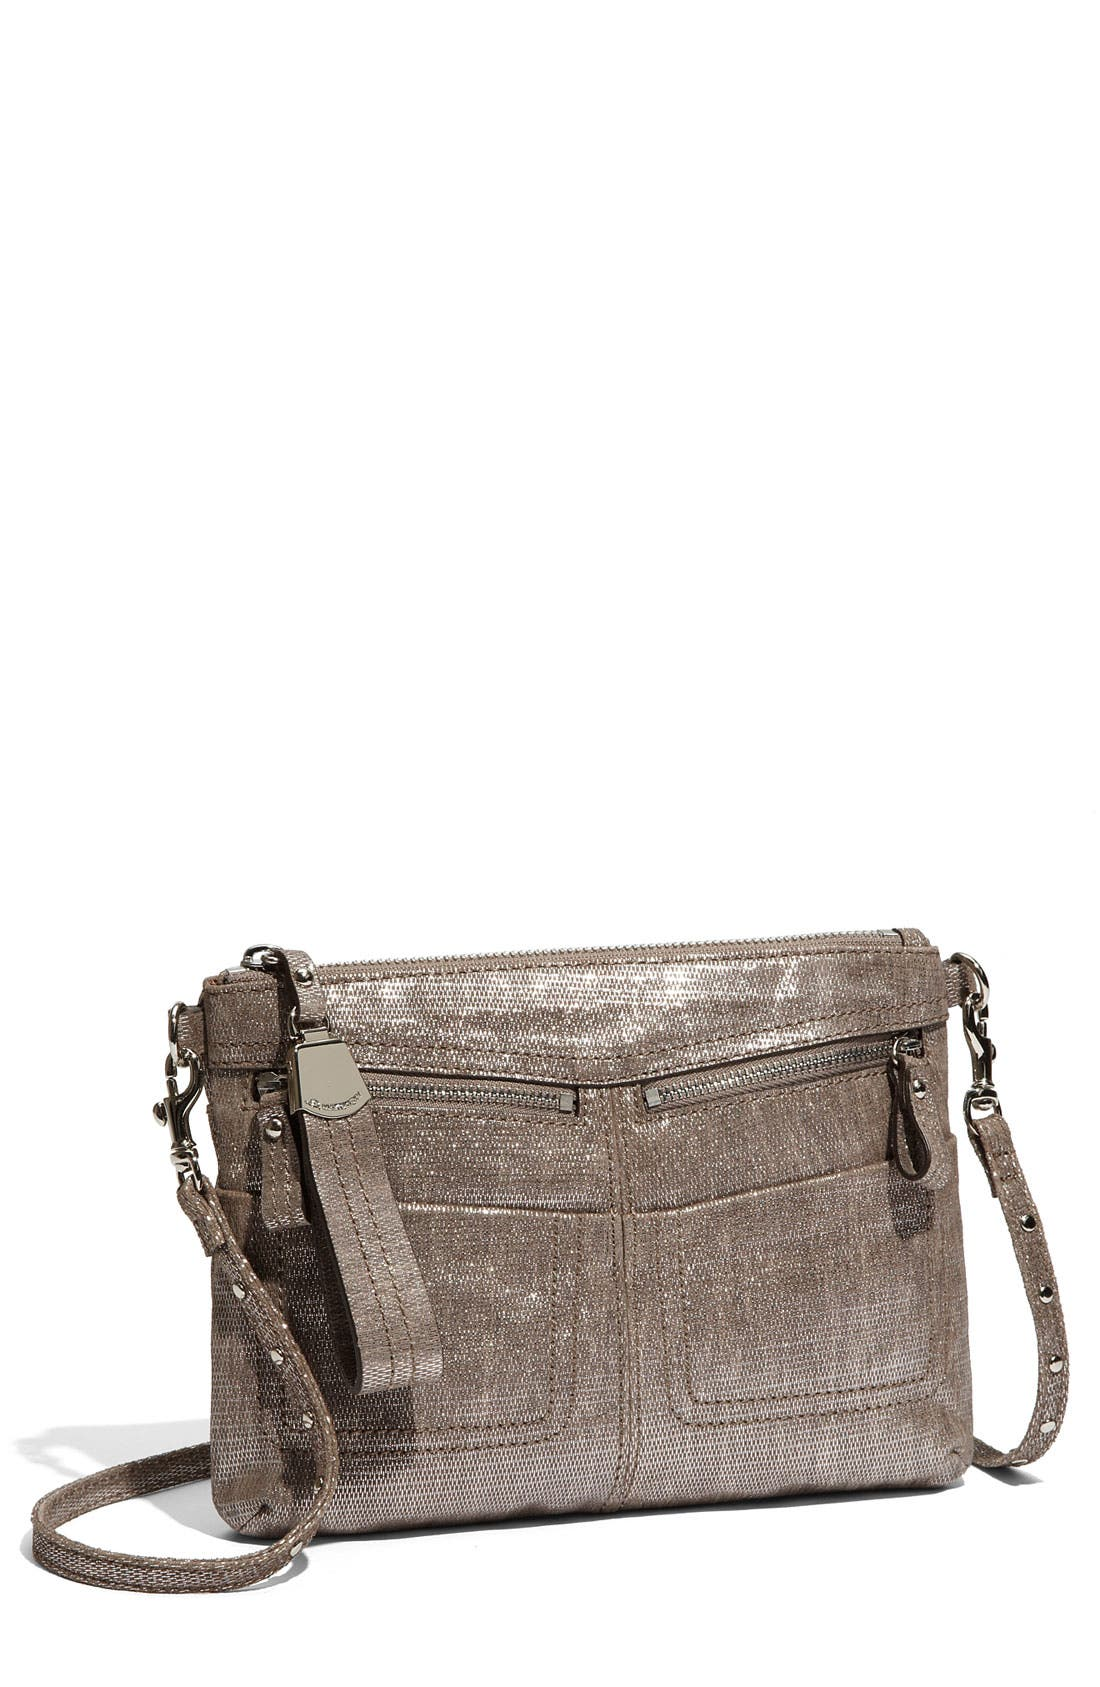 Main Image - B. Makowsky 'Ollie' Textured Leather Crossbody Bag